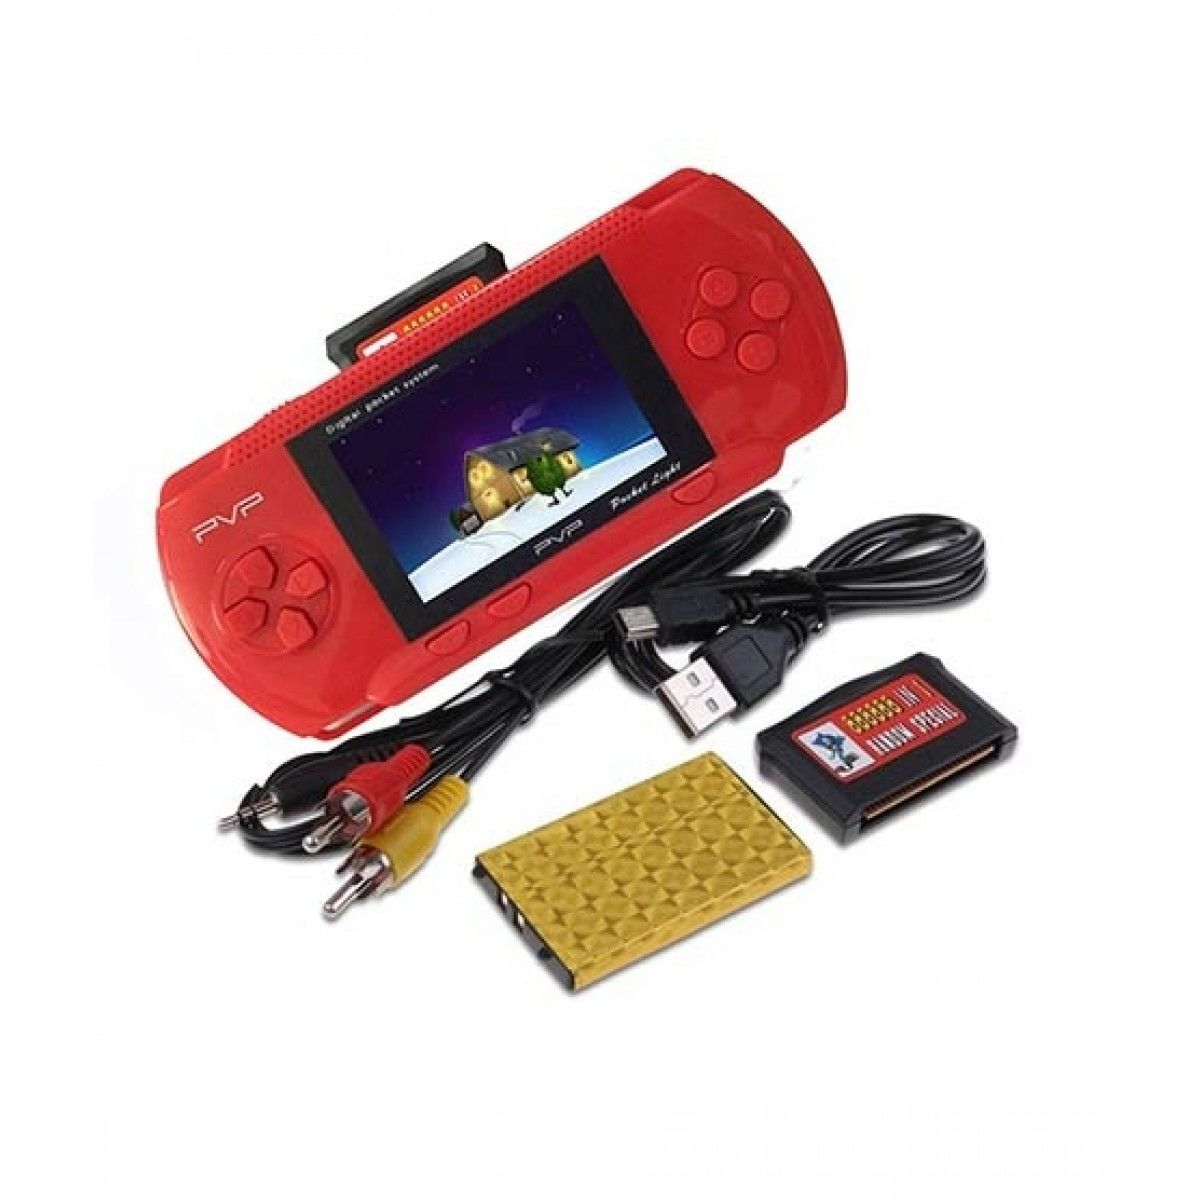 """PVP 2.8"""" Handheld Portable Game Console"""